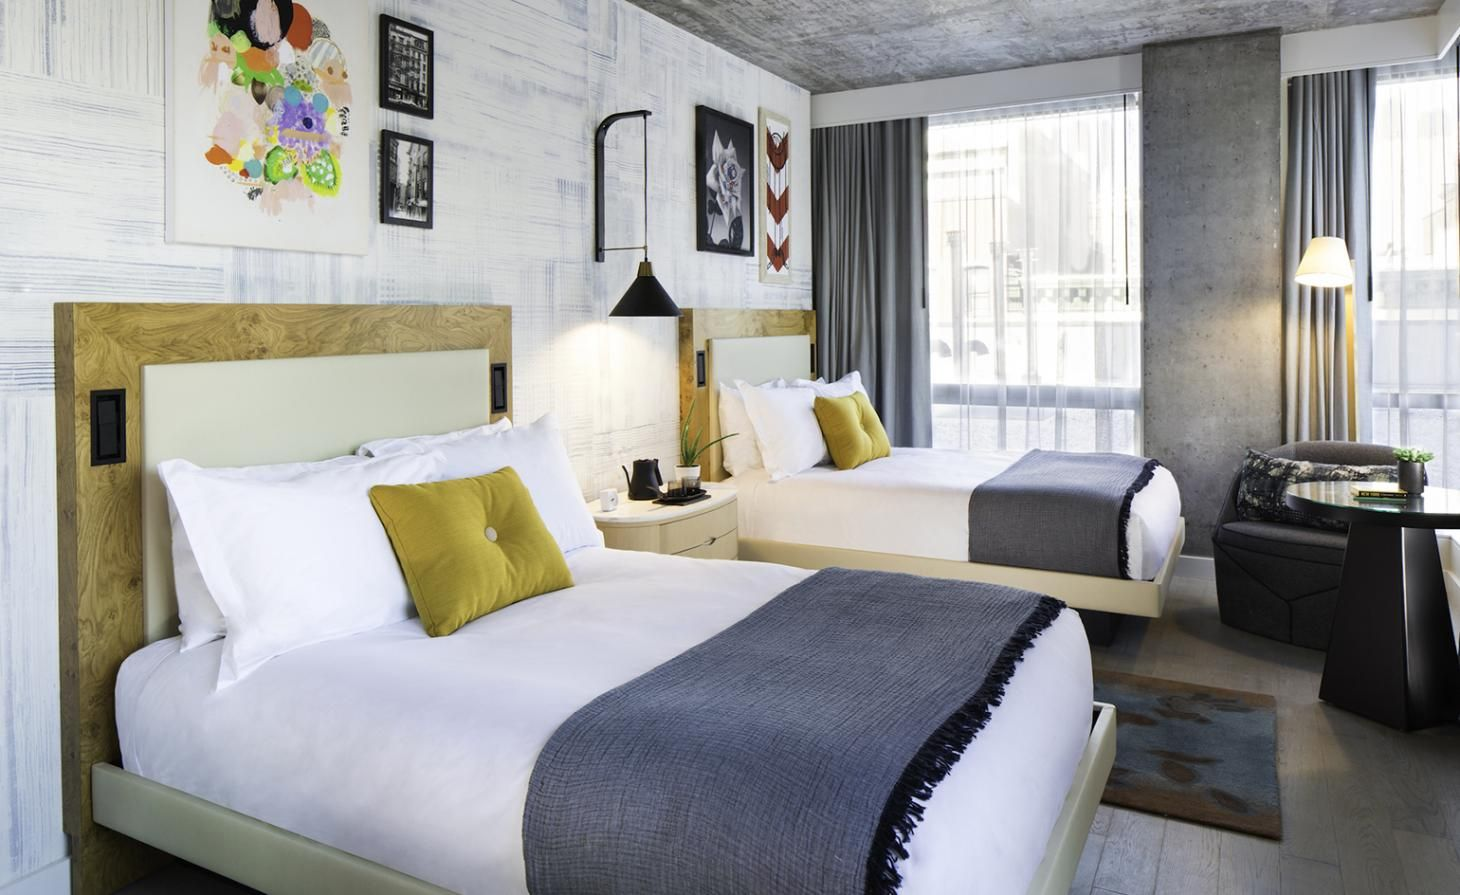 50 bowery hotel review new york usa hotel reviews york hotels